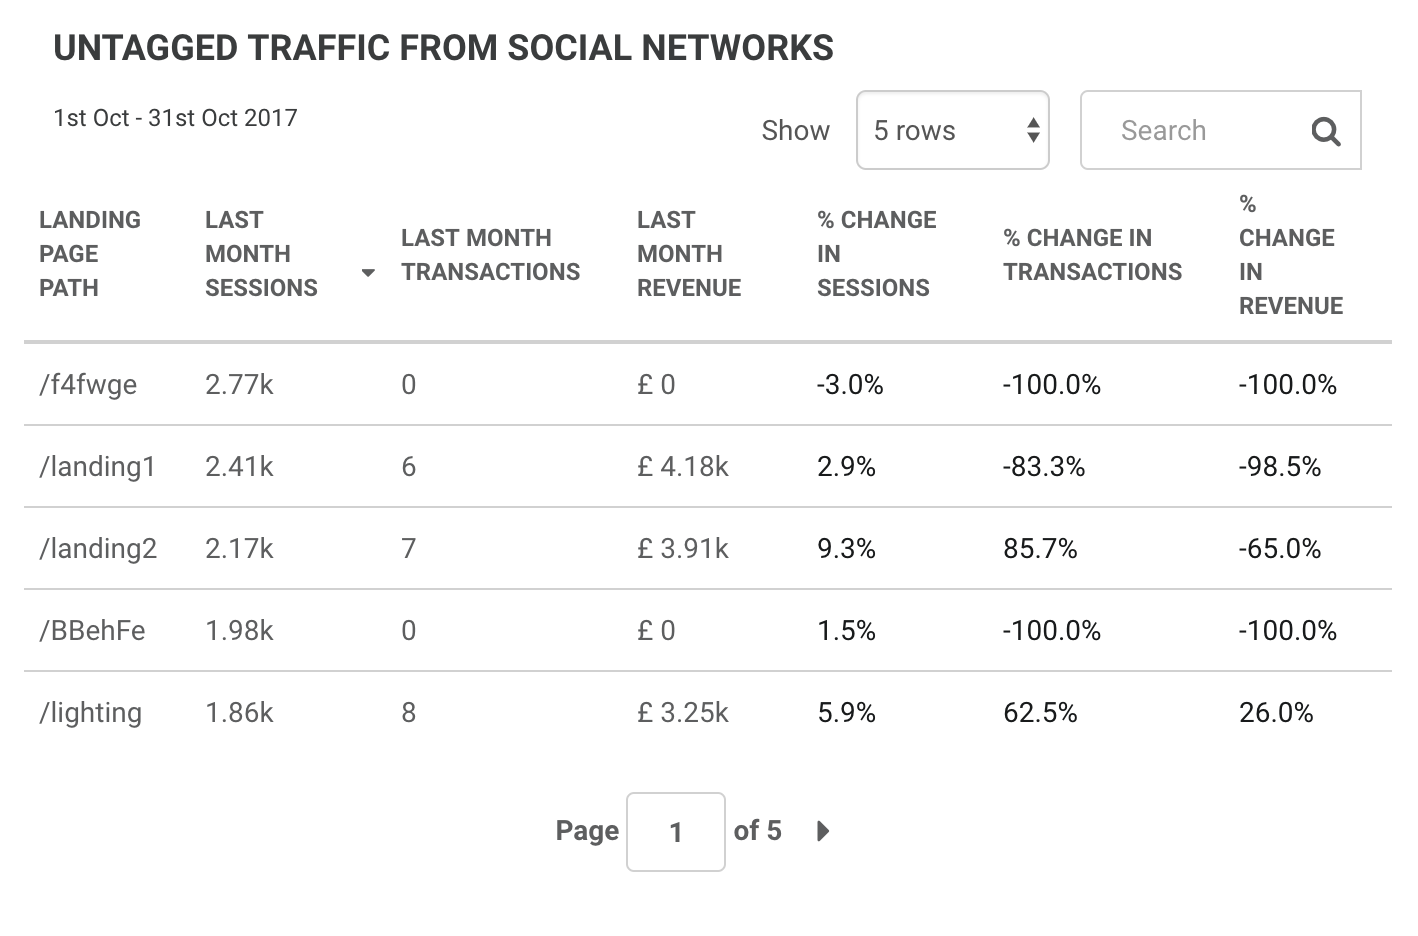 Untagged traffic from social networks